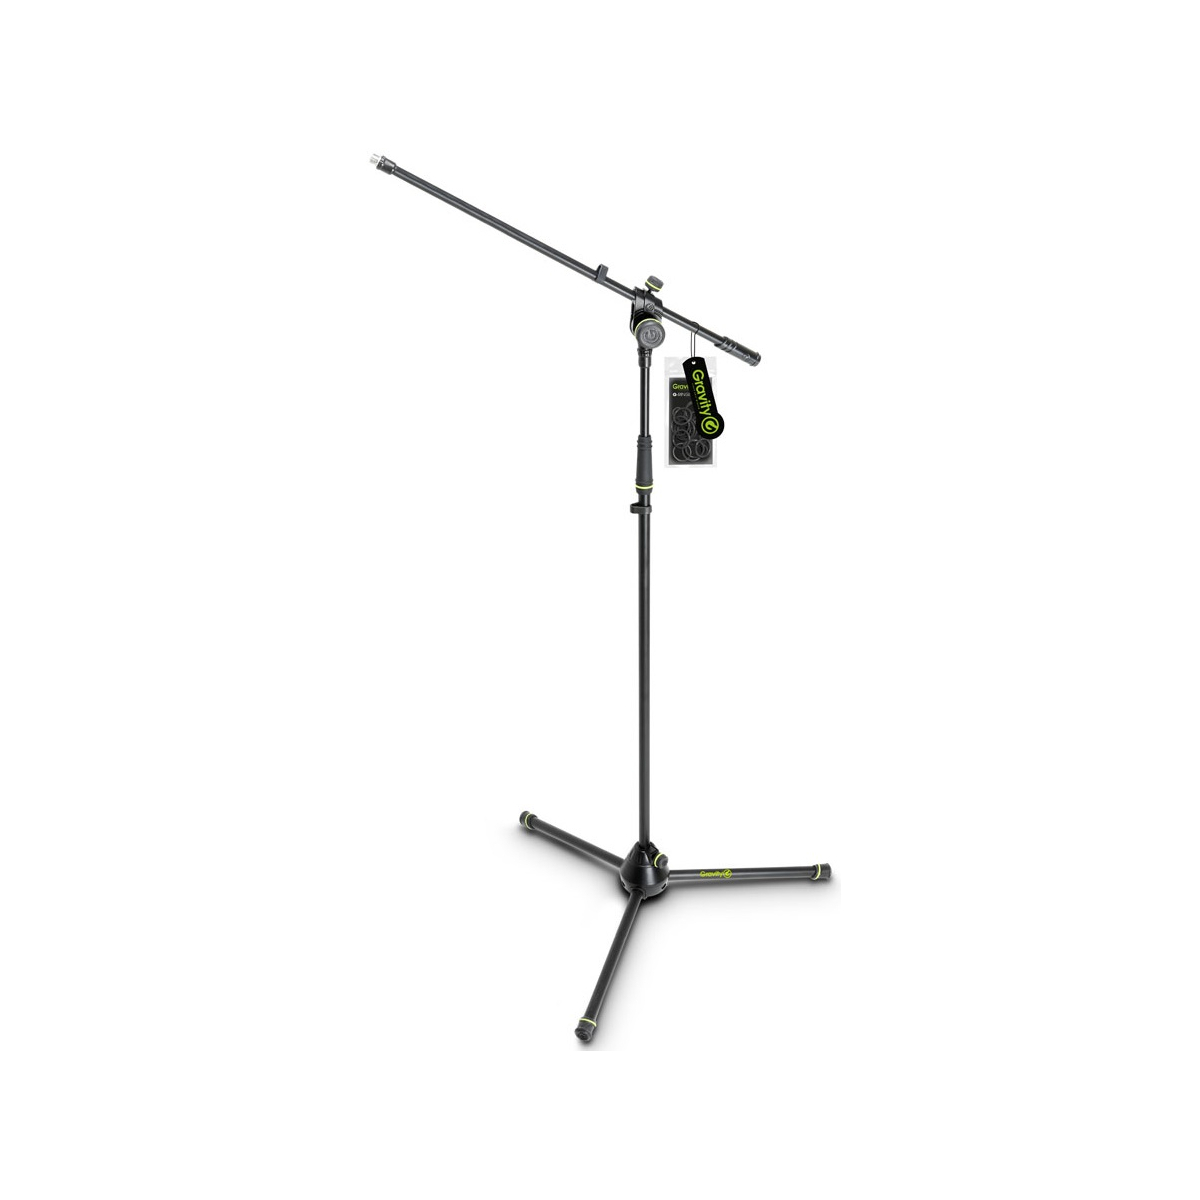 Pieds micros perches - Gravity - MS 4321 B